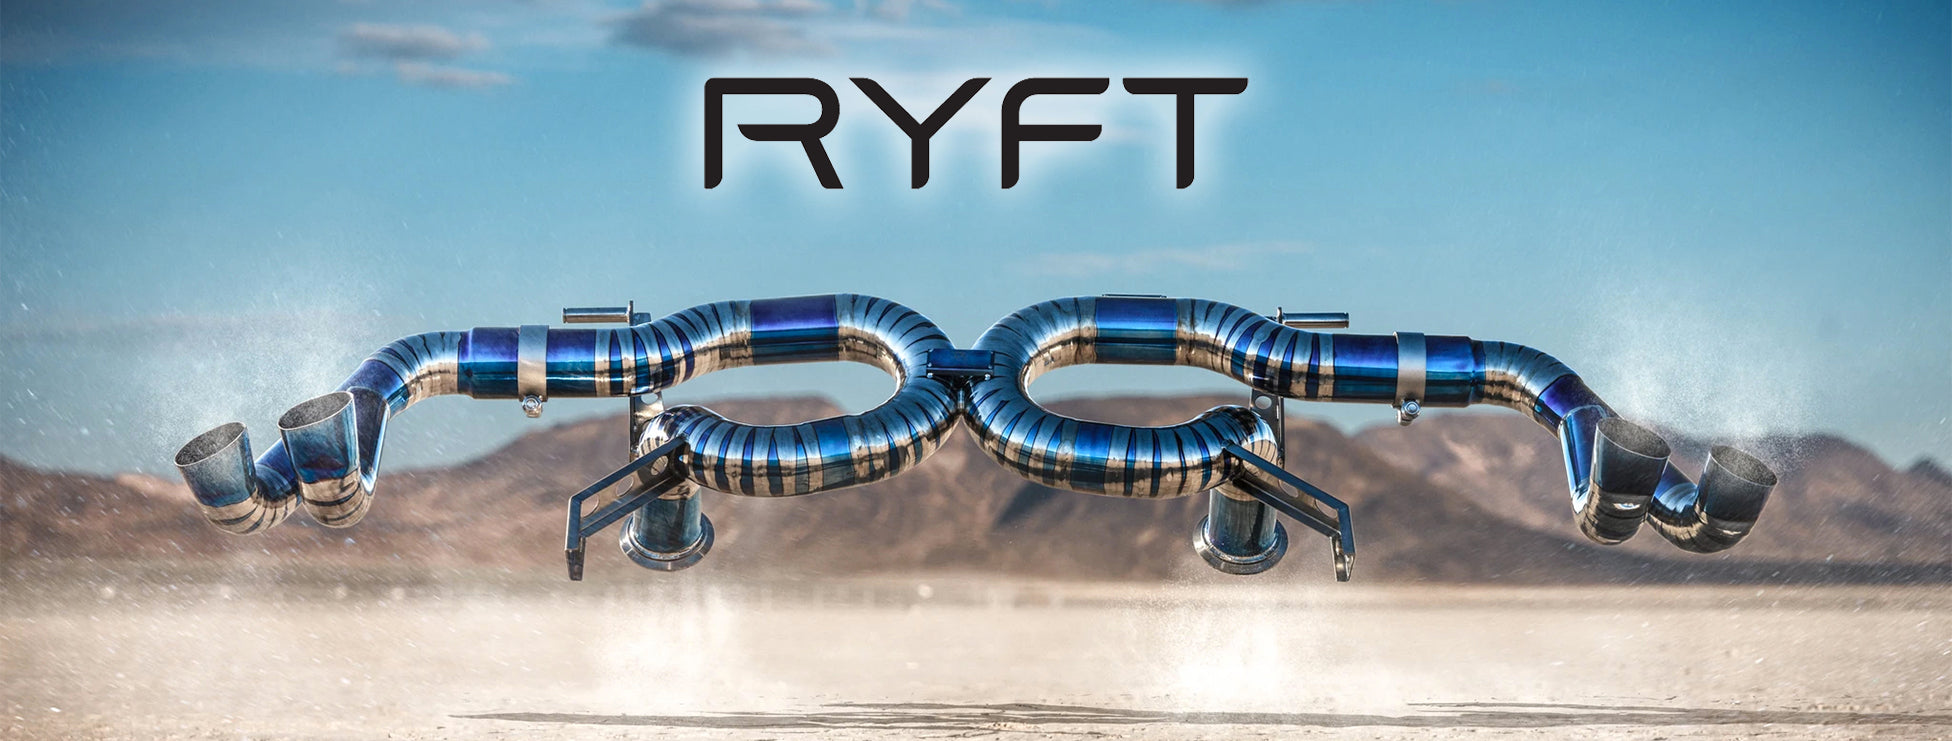 Ryft Exhausts and Exhaust Systems for Exotic Performance Sports Cars